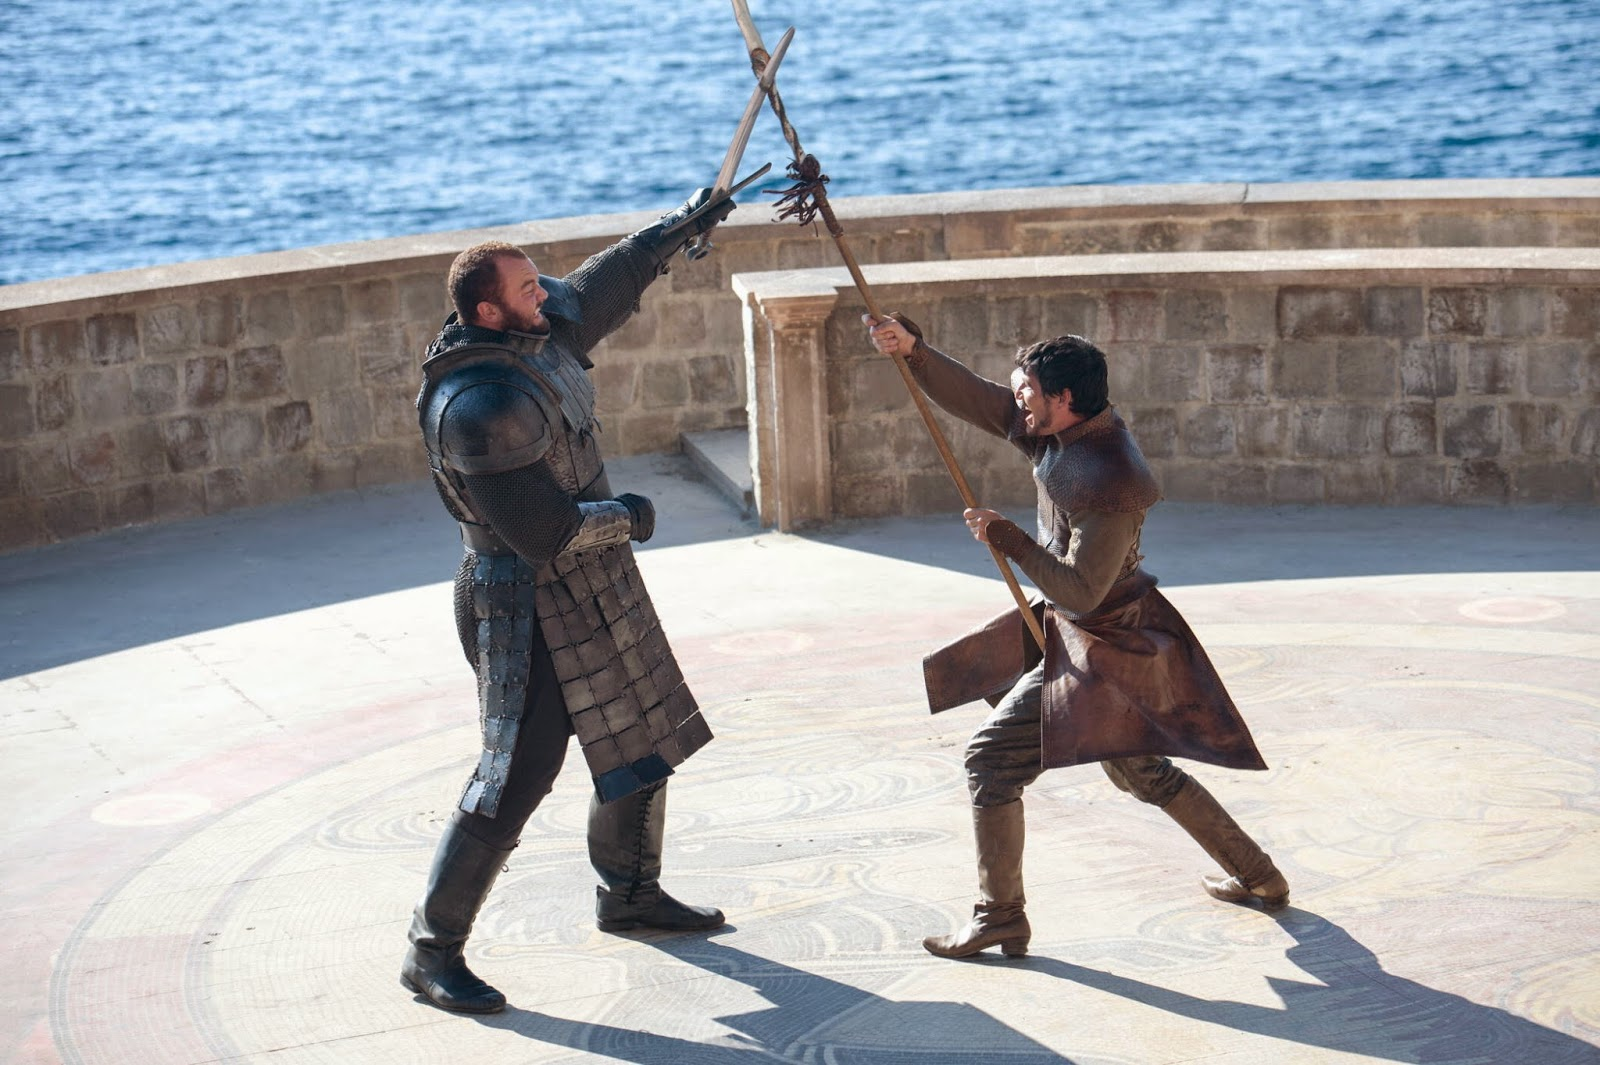 geek with curves: Favorite quotes from Game of Thrones ...